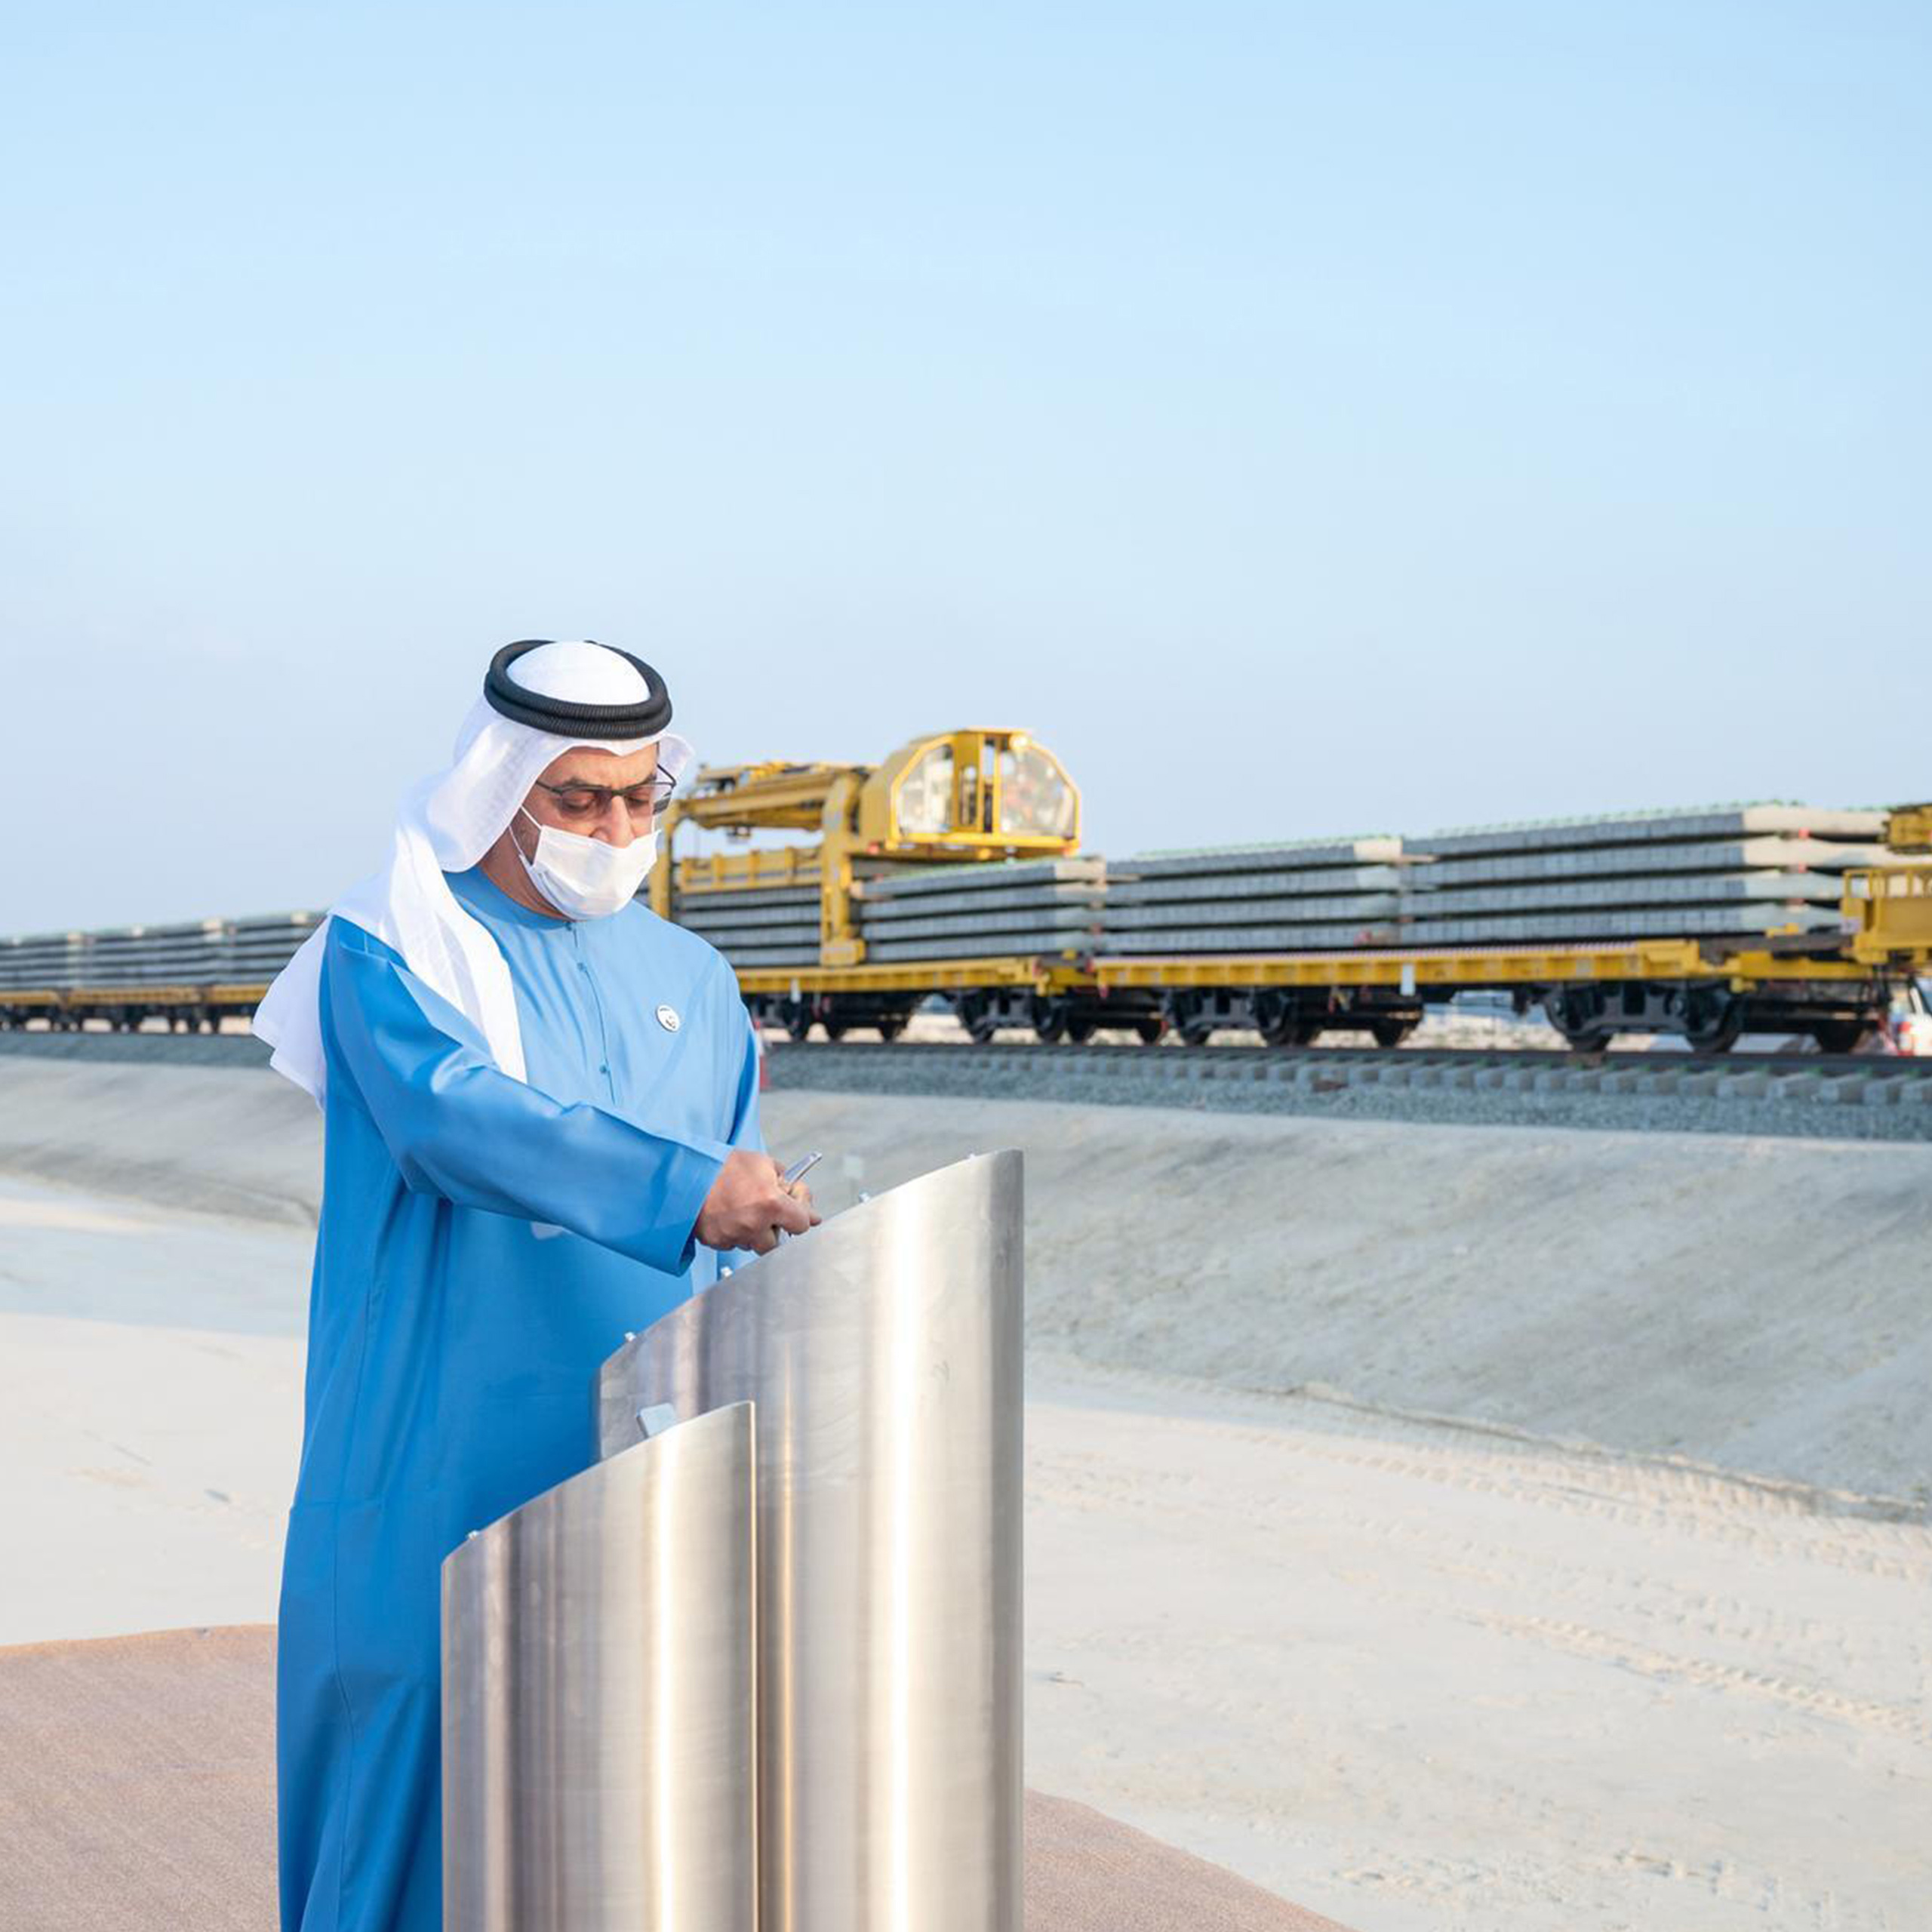 Hypermotion Dubai Industry News - Construction starts on UAE railway link to Saudi border